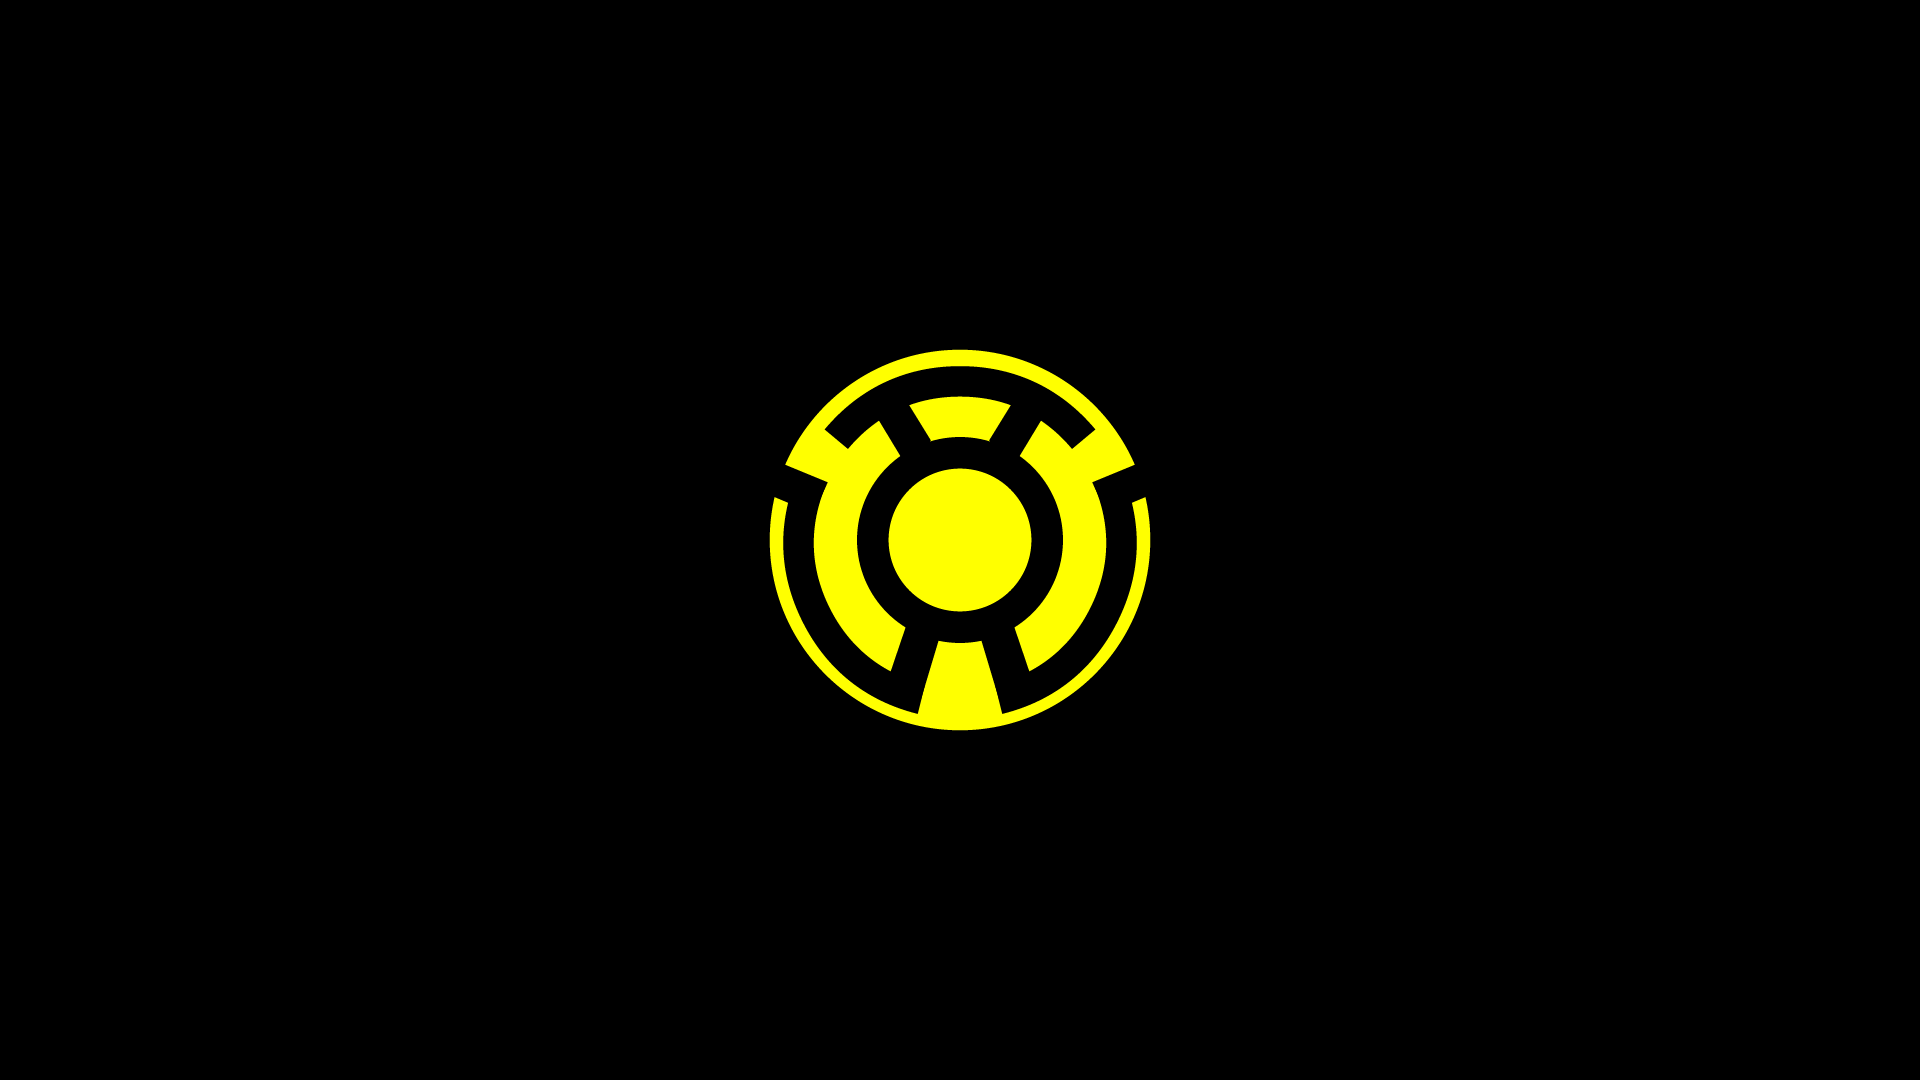 yellow lantern logo - HD 1920×1080